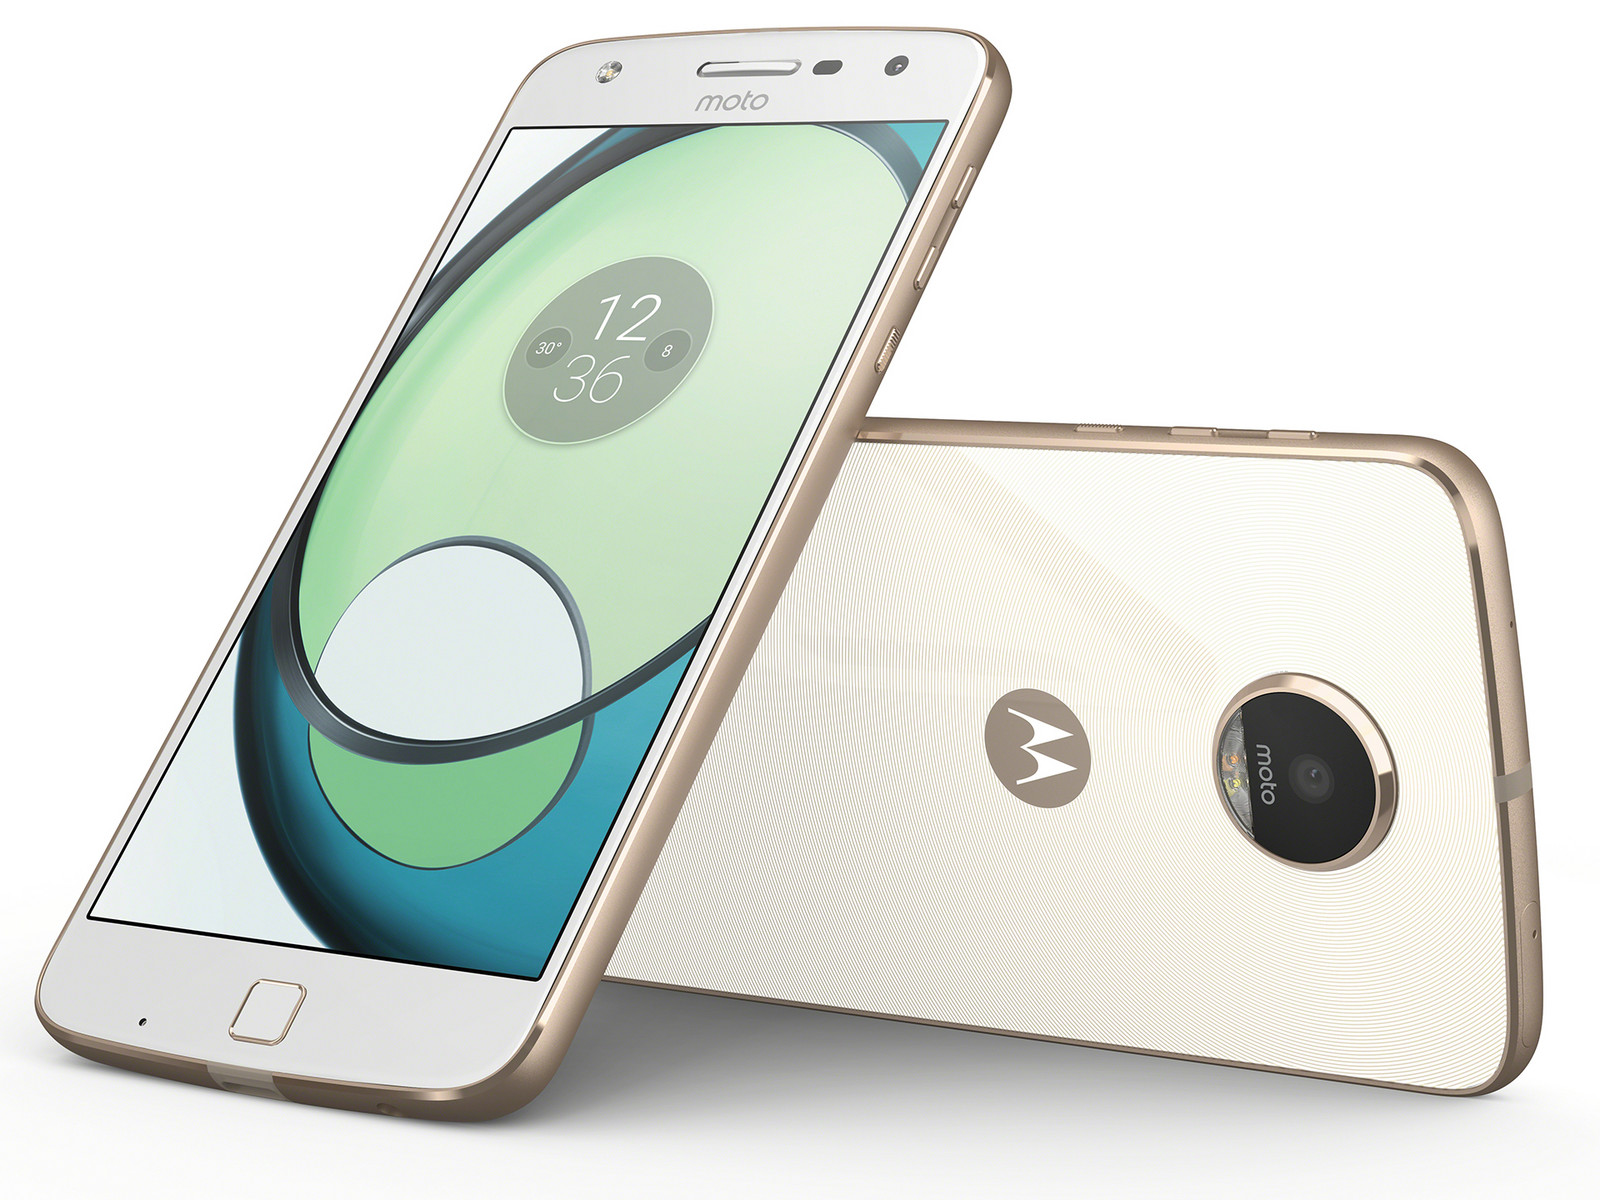 Moto z moto z play now available in india price specifications and - Specifications Lenovo Moto Z Play